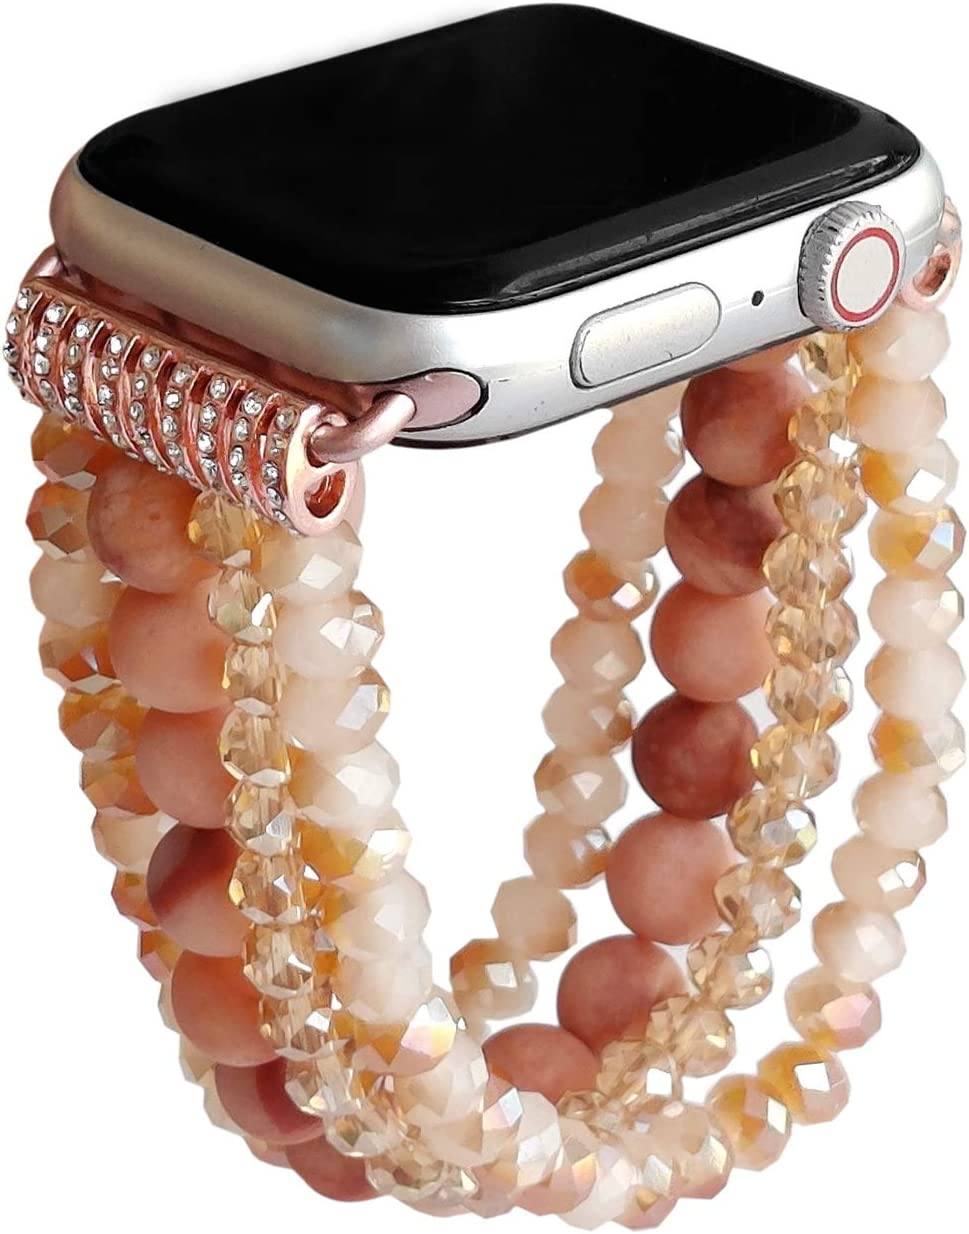 ZOOZOOT Natural Gemstone Crystal Bracelet Compatible with Apple Watch Bands Women Girl, Cute Handmade Fashion Elastic Beaded Strap Compatible for Apple iWatch Series 5/4/3/2/1